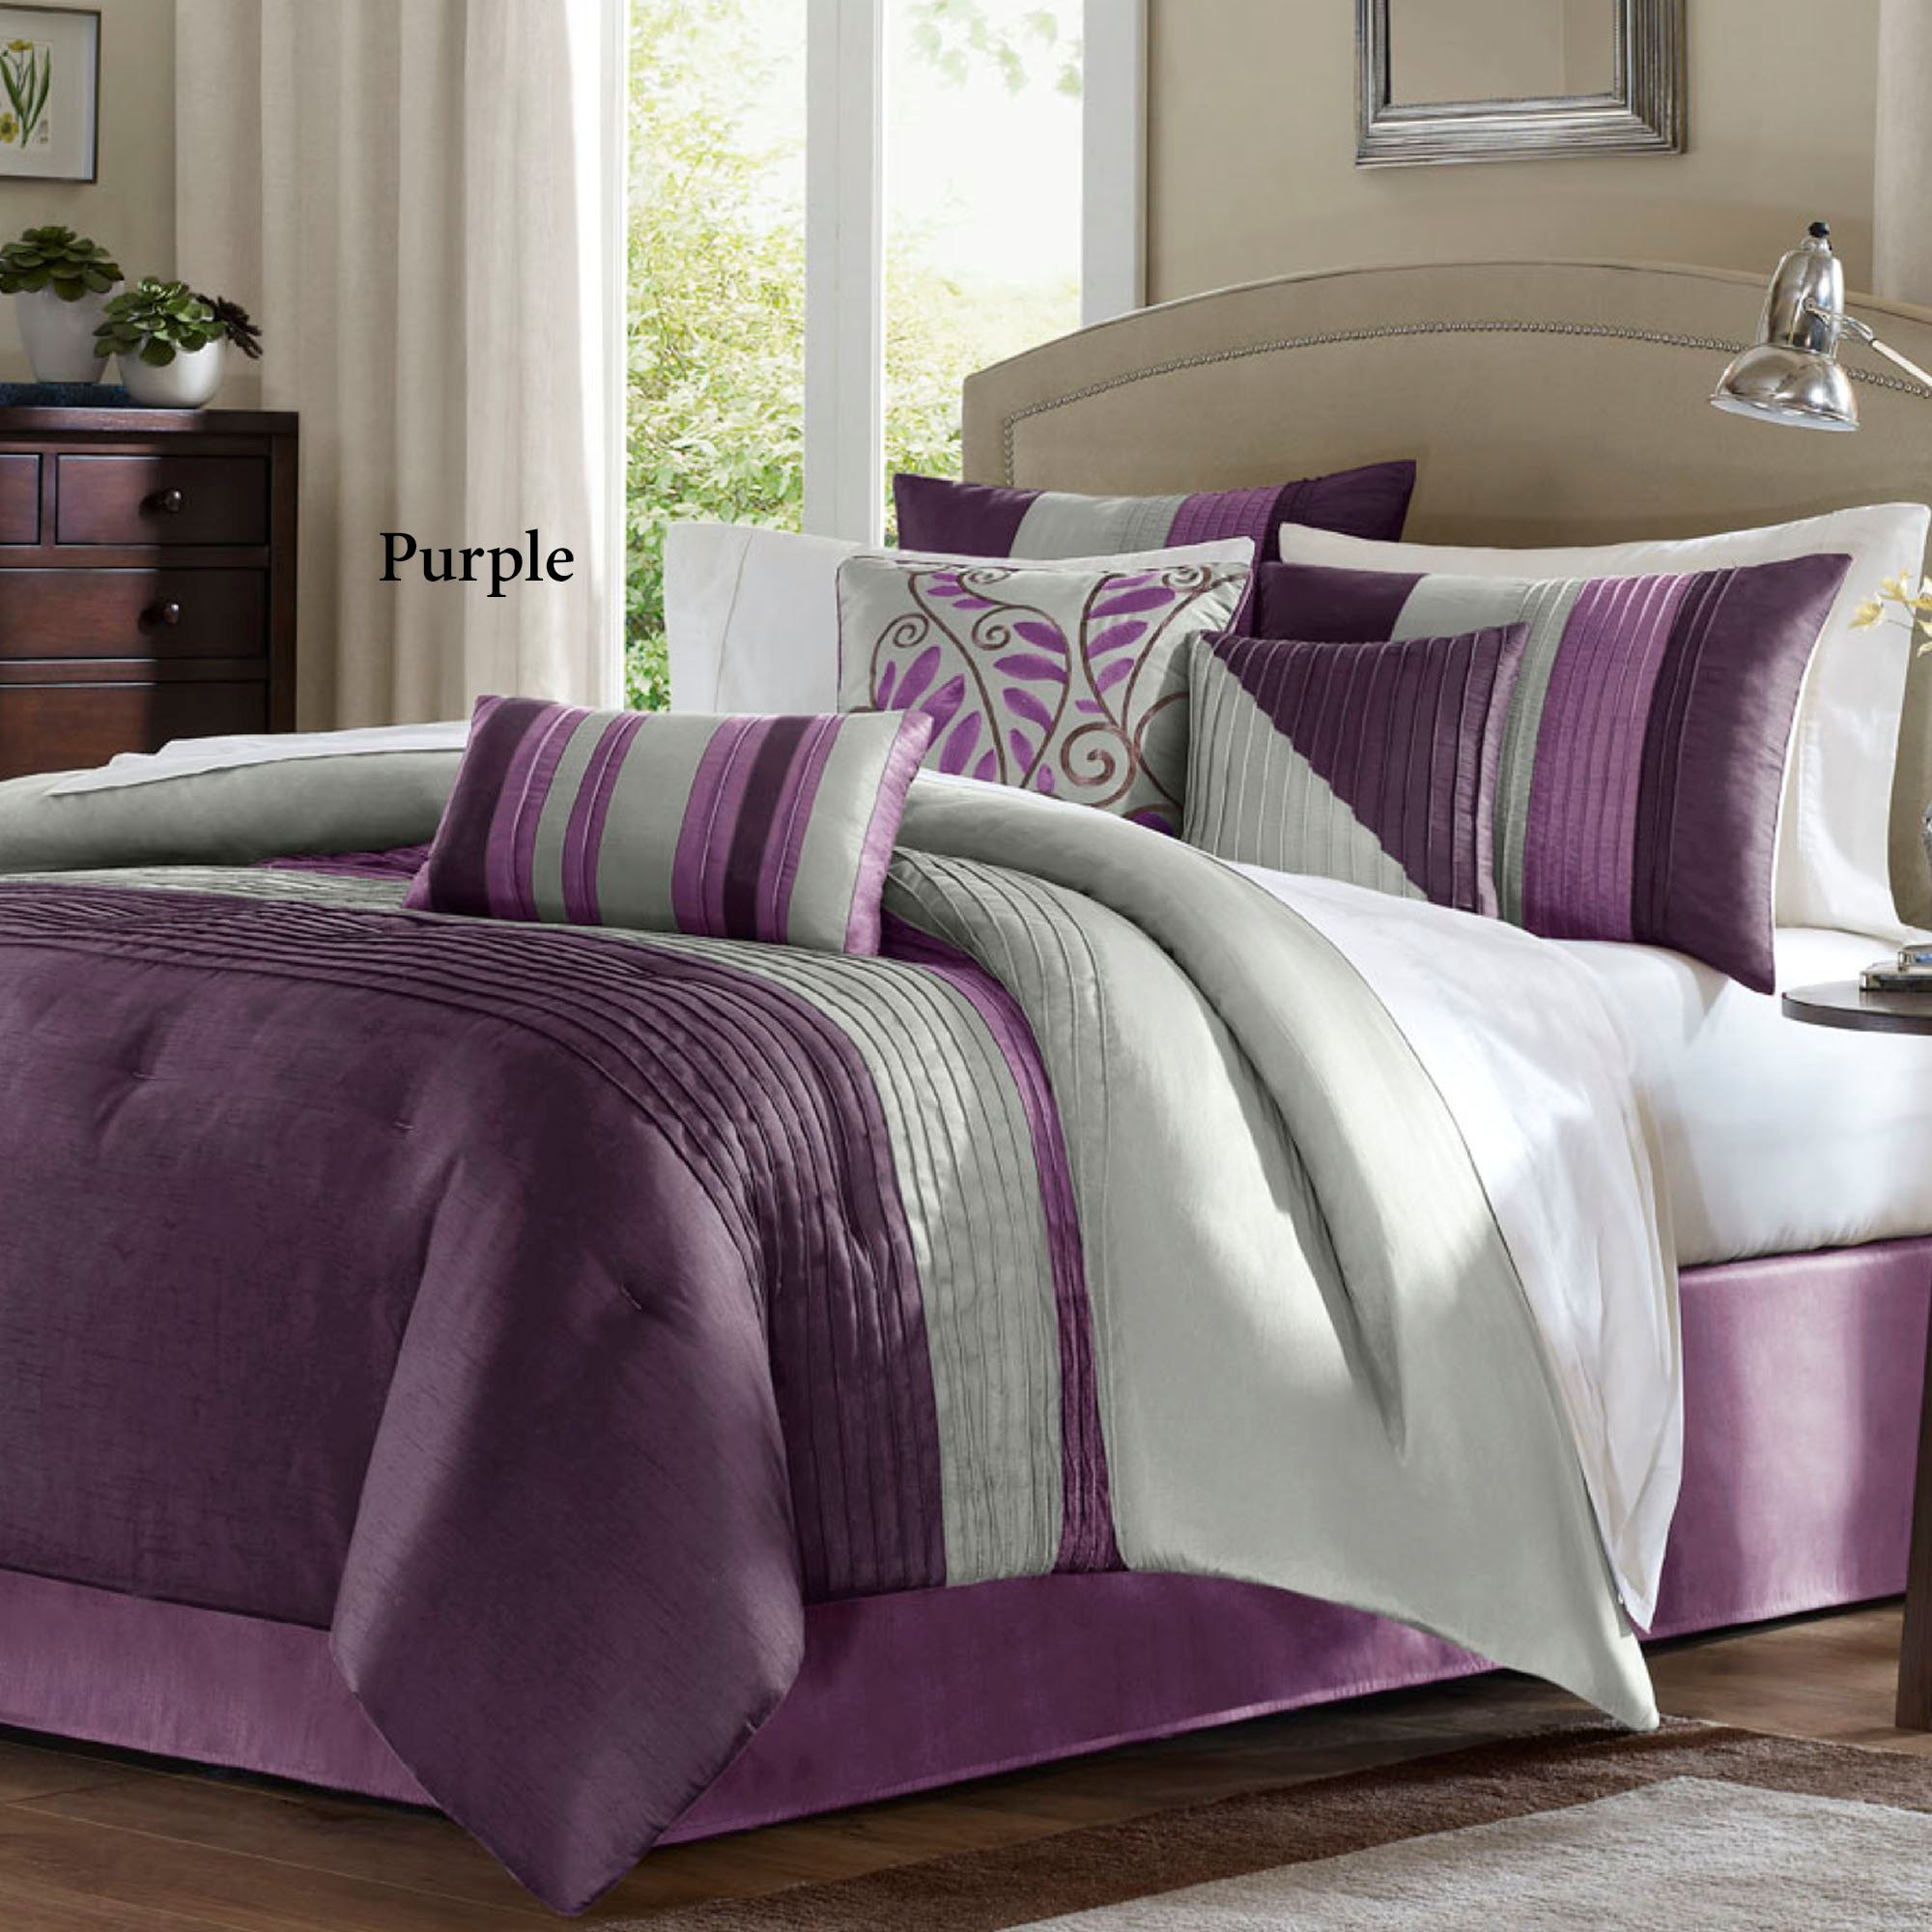 pdx richmond home williamsburg heritage comforter reviews royal bath bed wayfair bedspread lilac